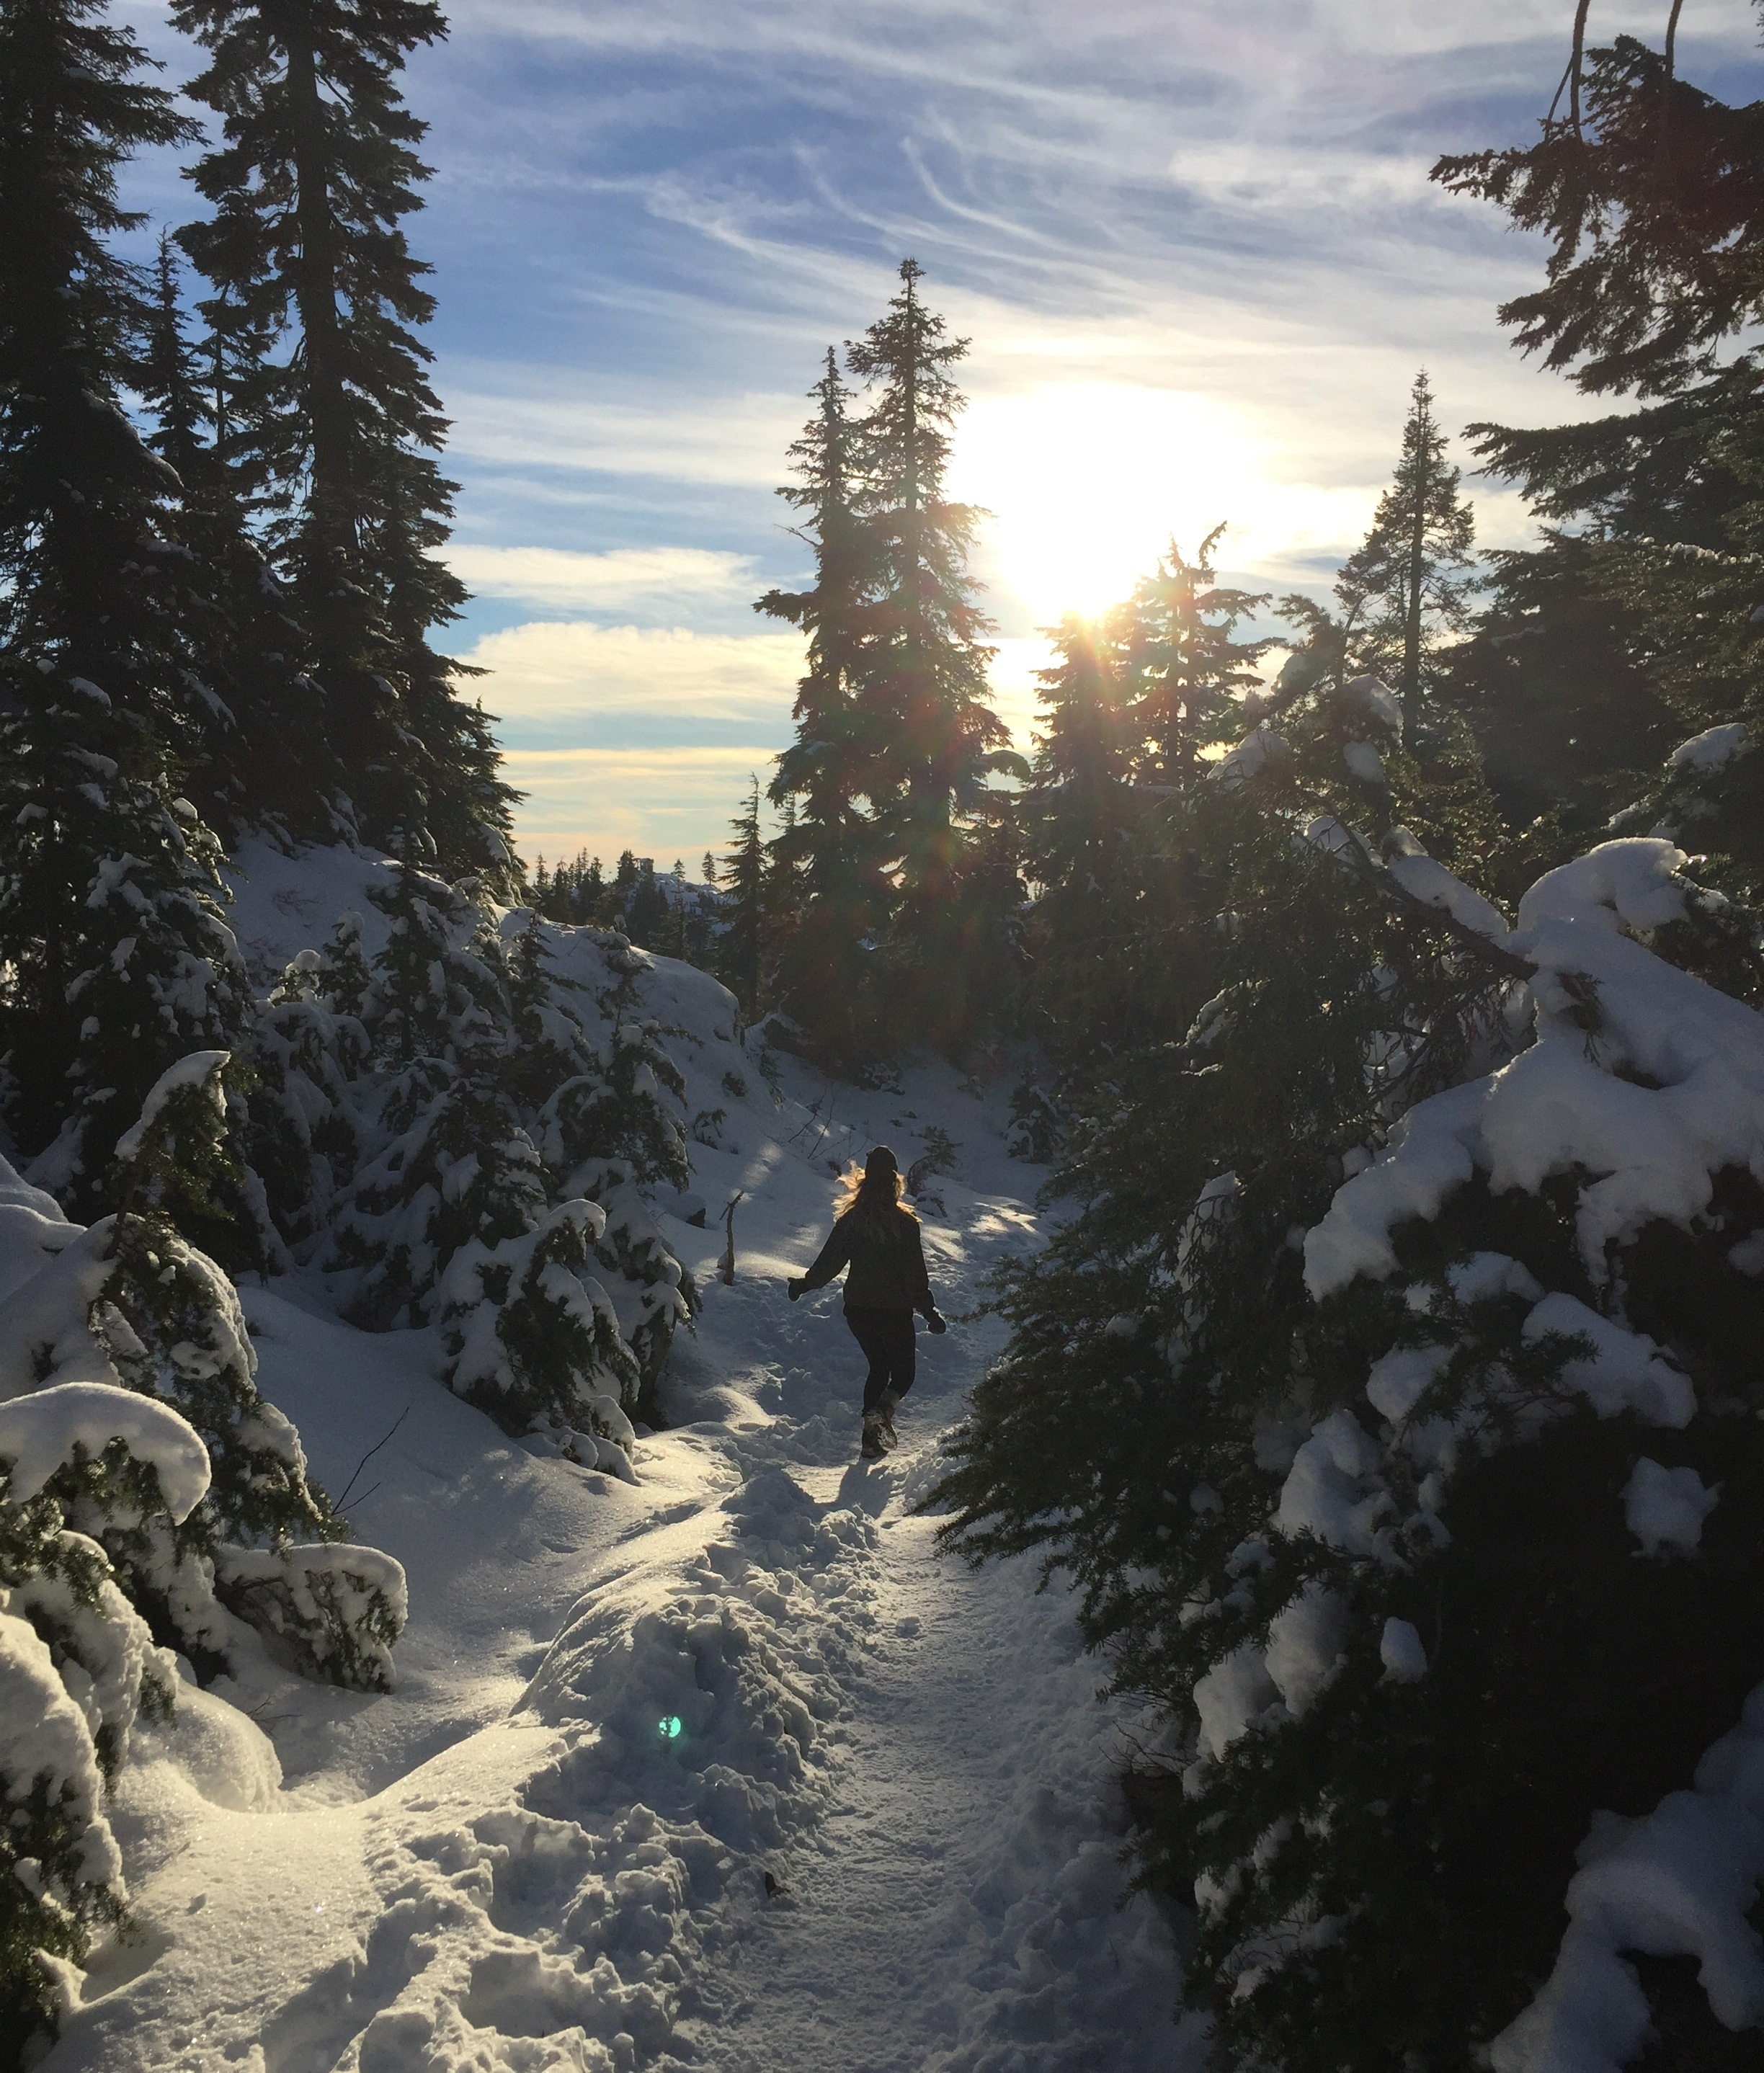 Winter Wonderland On Mt. Seymour